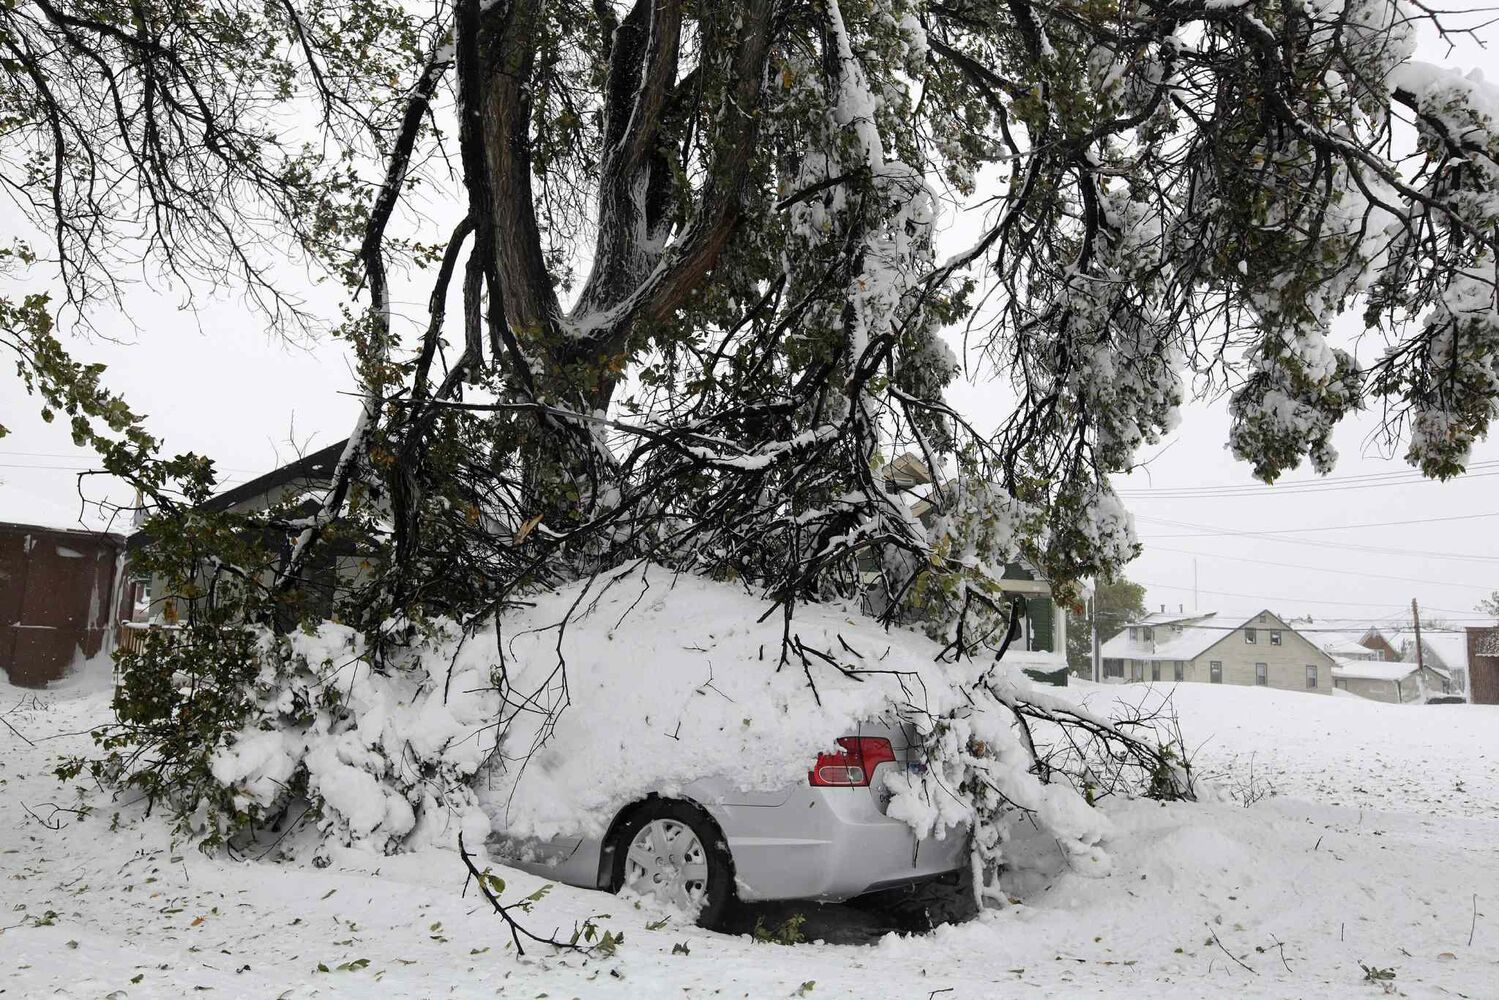 Broken tree branches cover a vehicle Saturday in Rapid City, S.D.  (Benjamin Brayfield / The ASsociated Press)